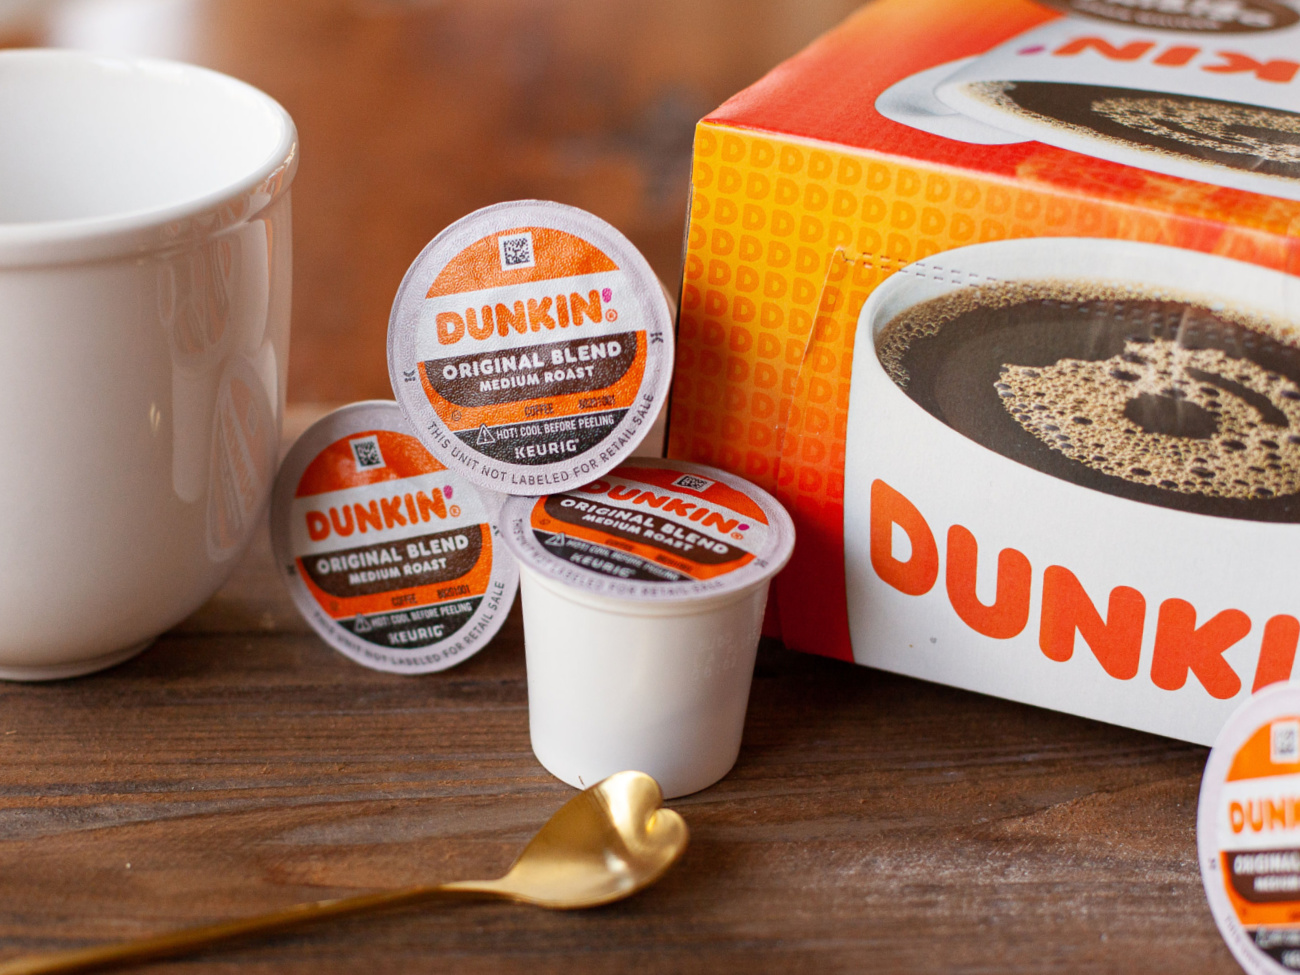 Dunkin' Donuts Coffee Products - As Low As $5.74 At Publix (Save Up To $3.75) on I Heart Publix 1